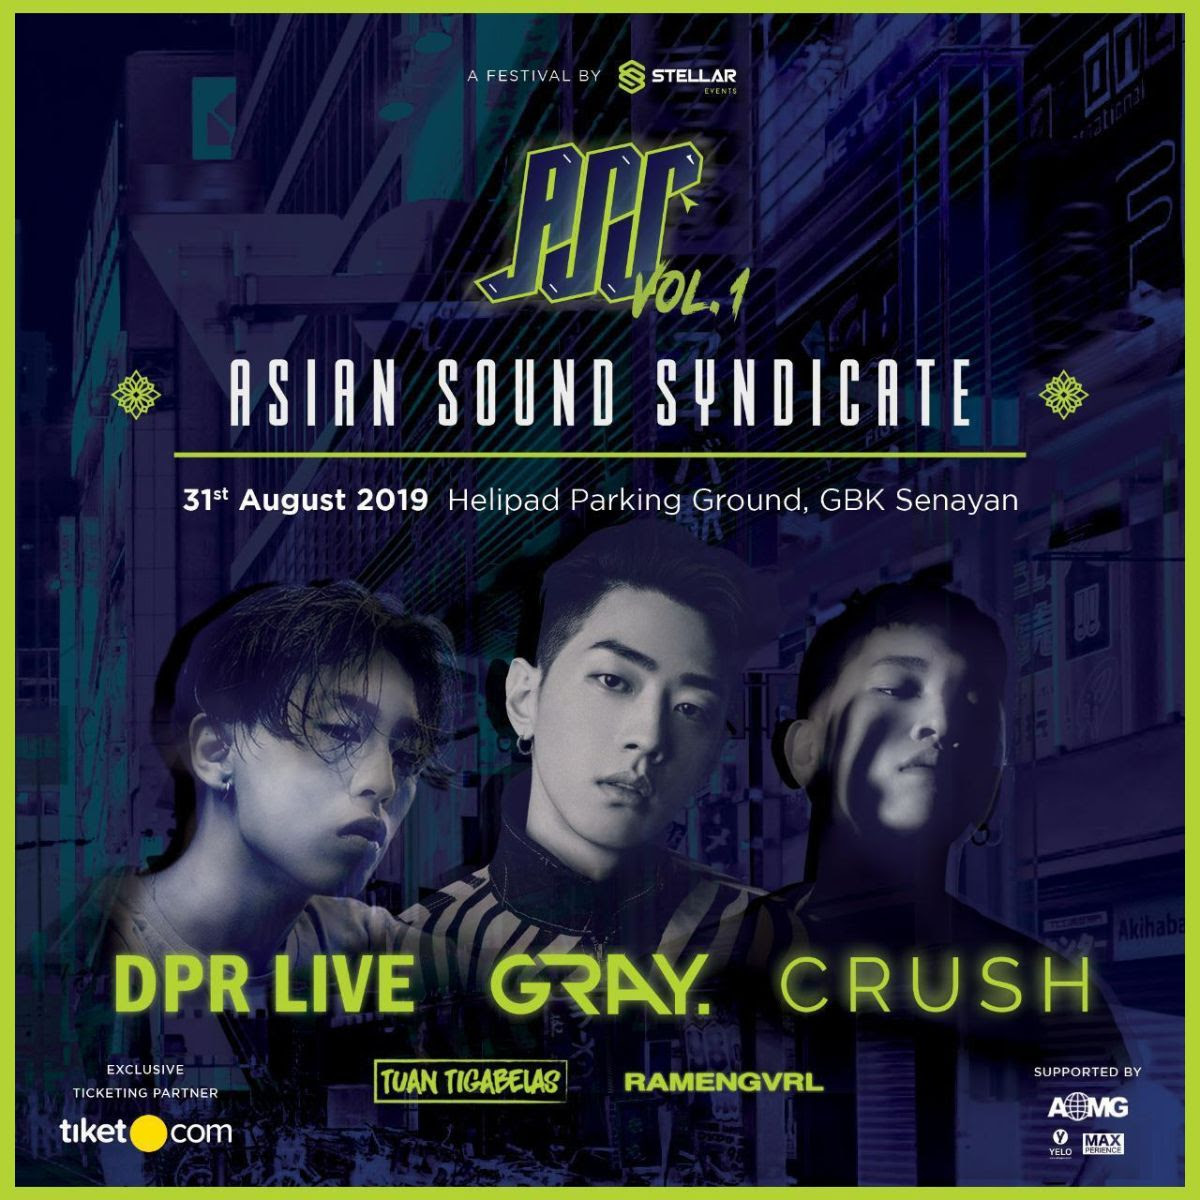 Asian Sound Syndicate Vol.1 Sajikan Festival Musik Hip-Hop Internasional